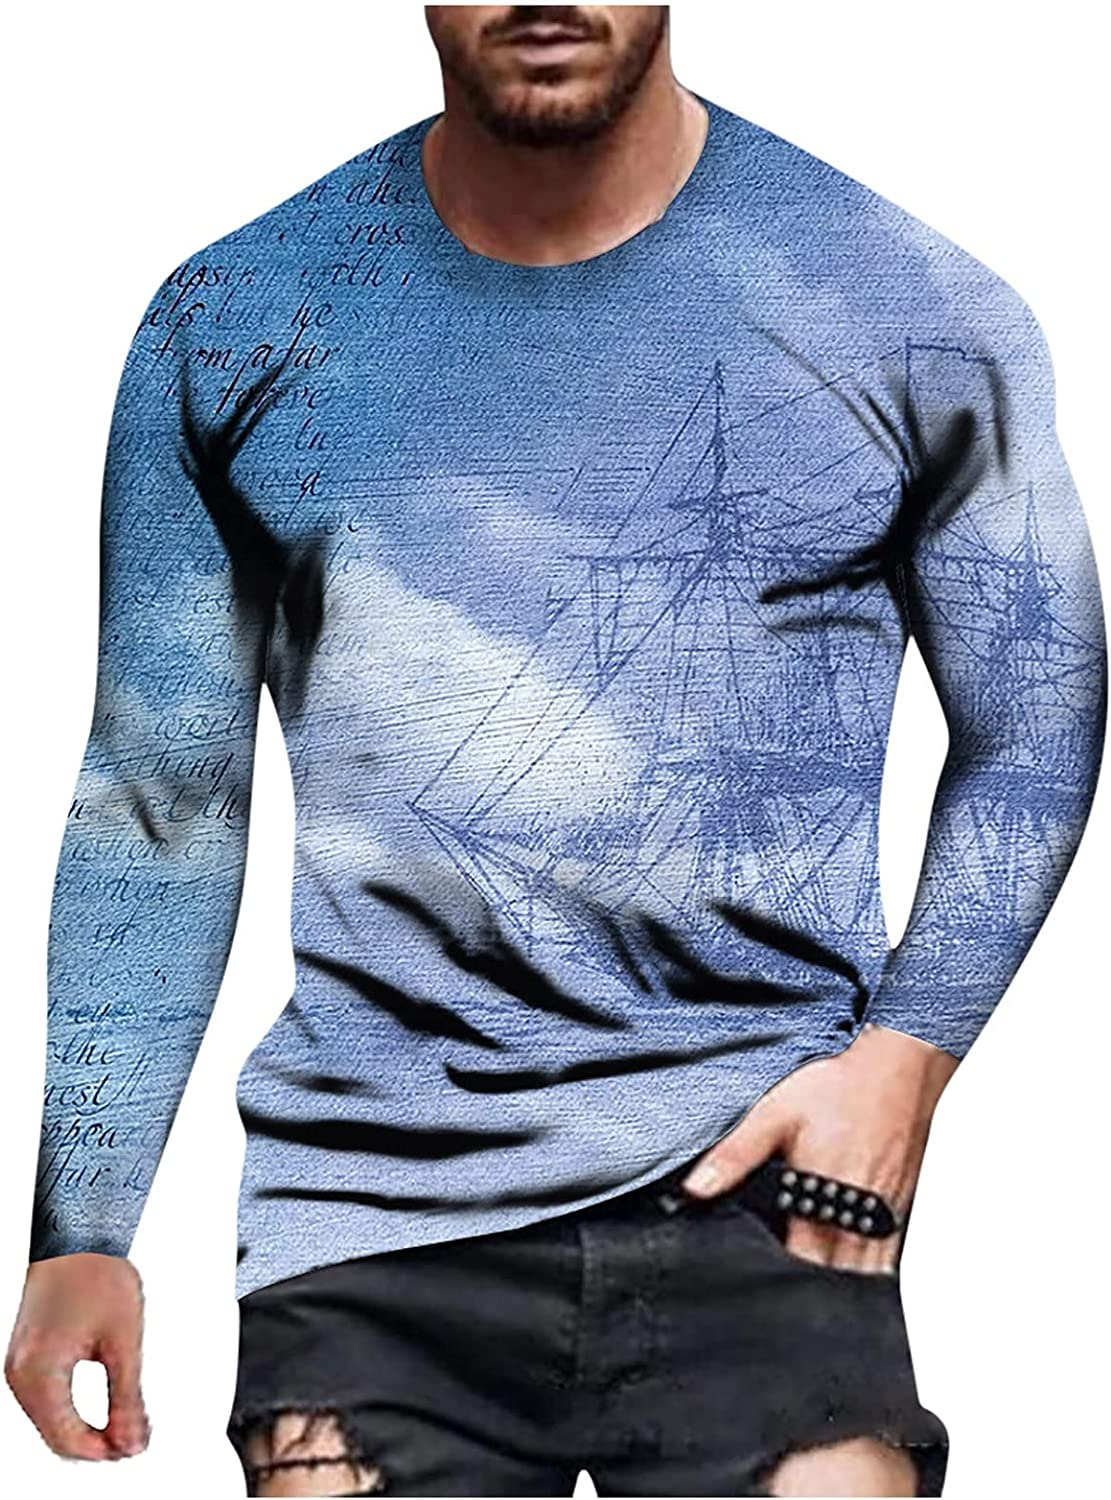 LEIYAN Mens Muscle Workout T Shirt Casual Long Sleeve Printed Stylish Bodybuilding Athletic Gym Cotton Tee Shirt Top